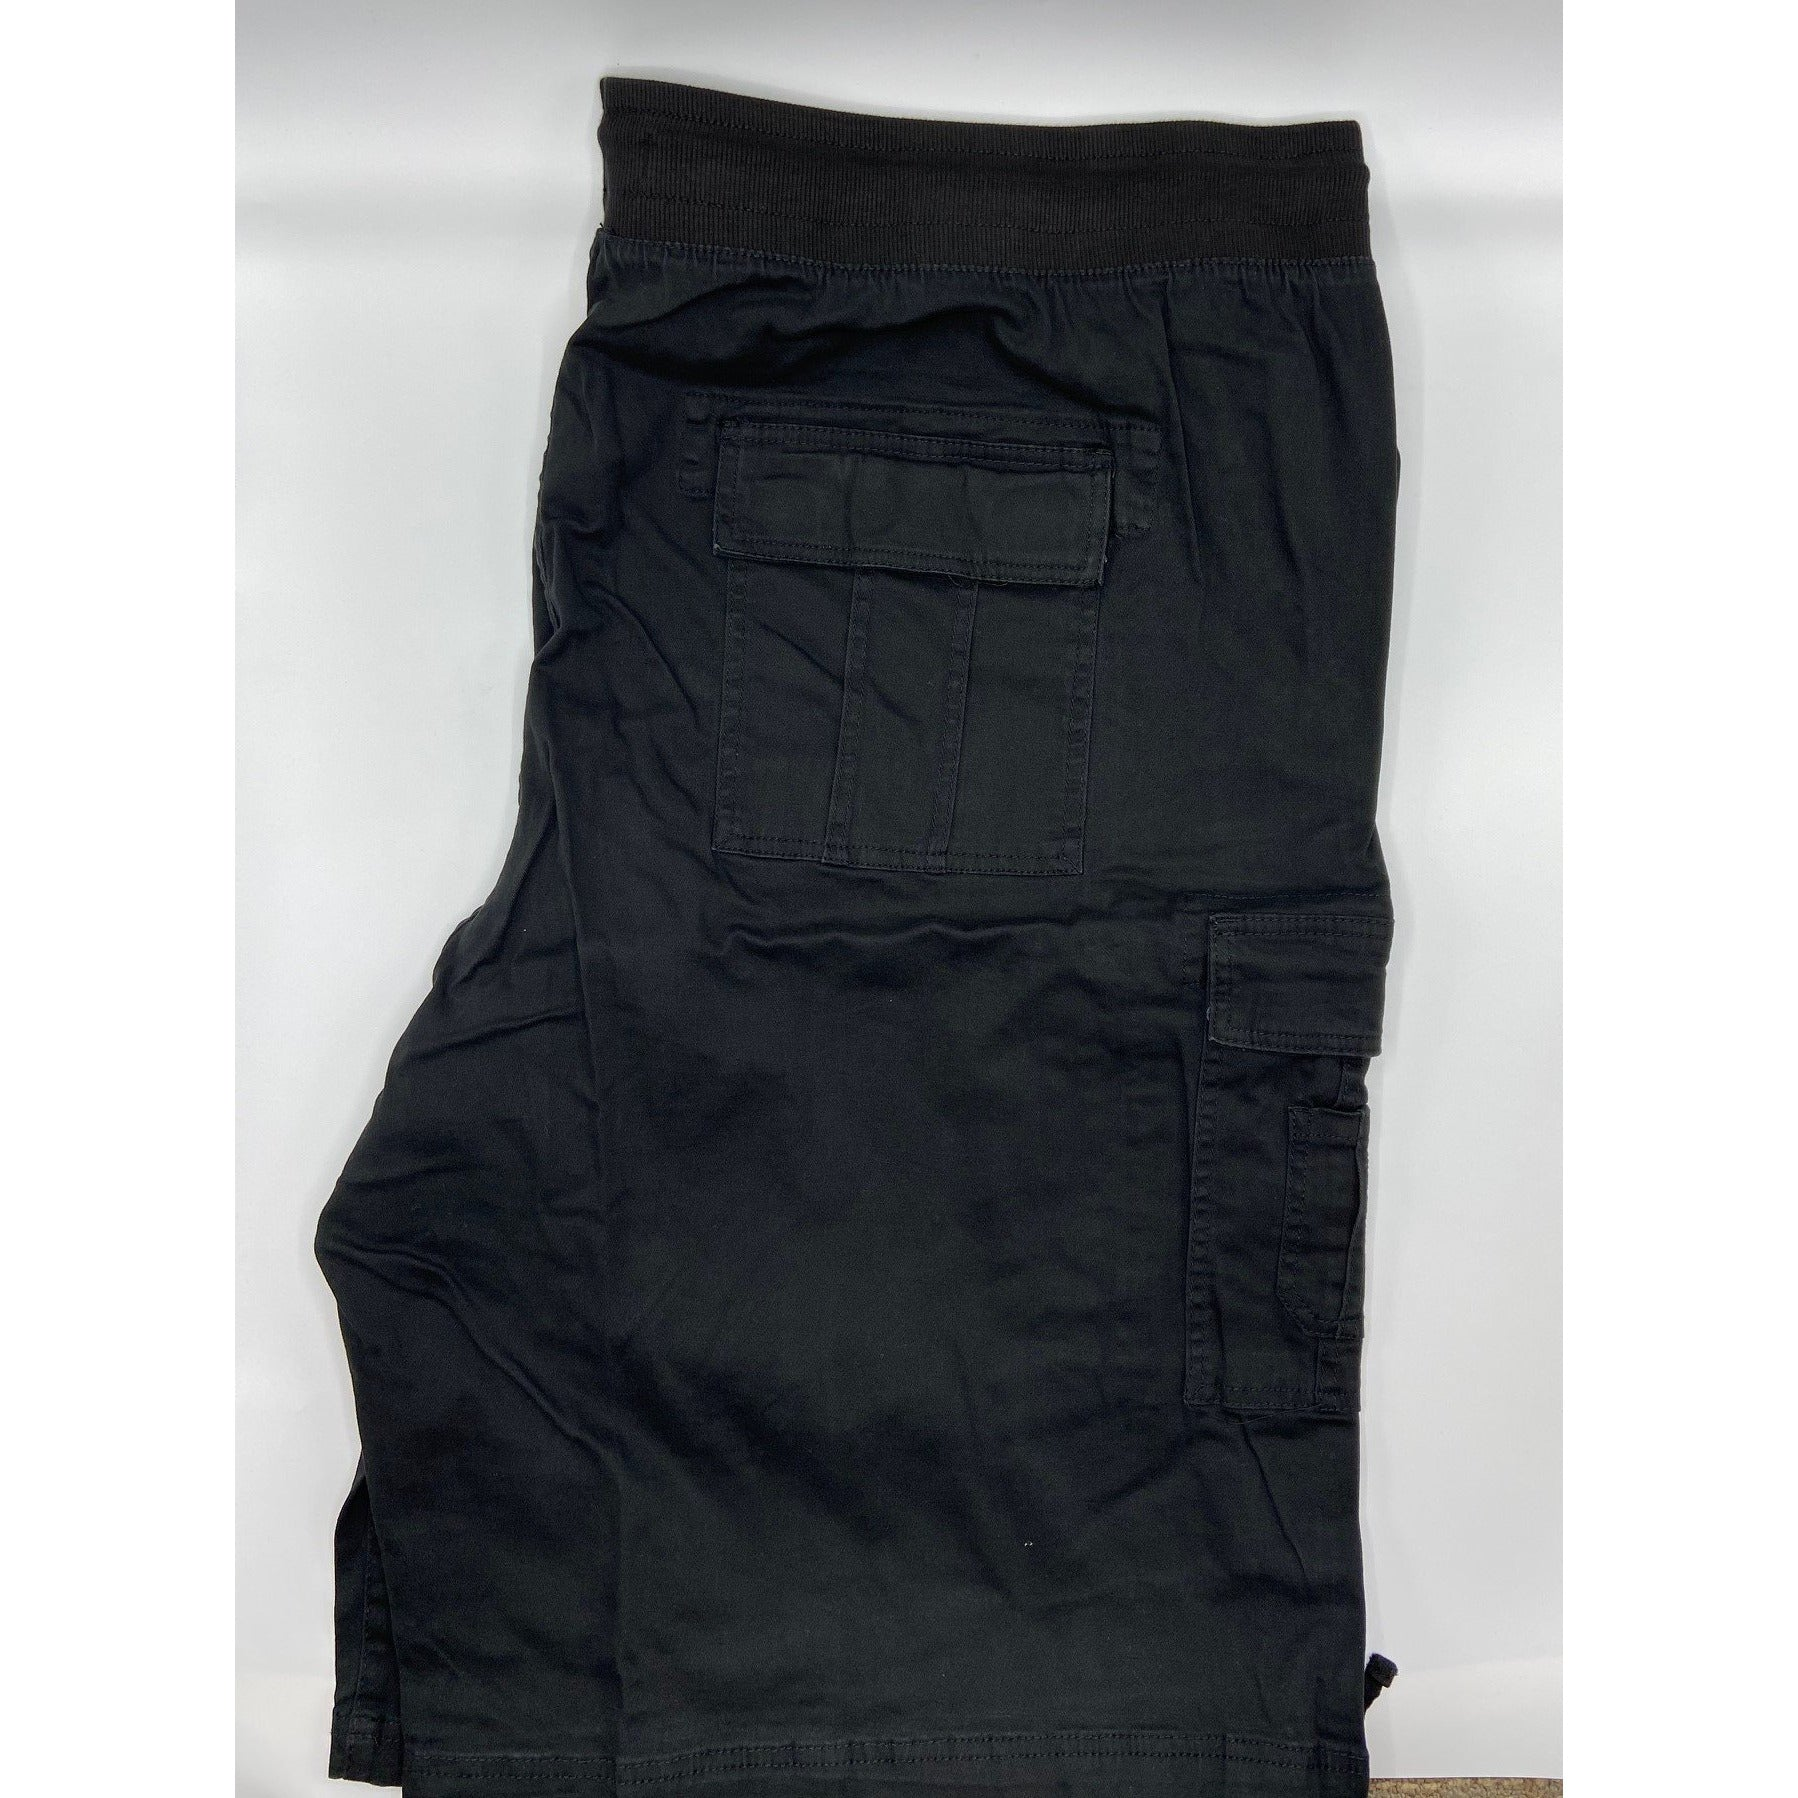 ROCAWEAR BIG & TALL STRETCH TWILL SHORT BLACK